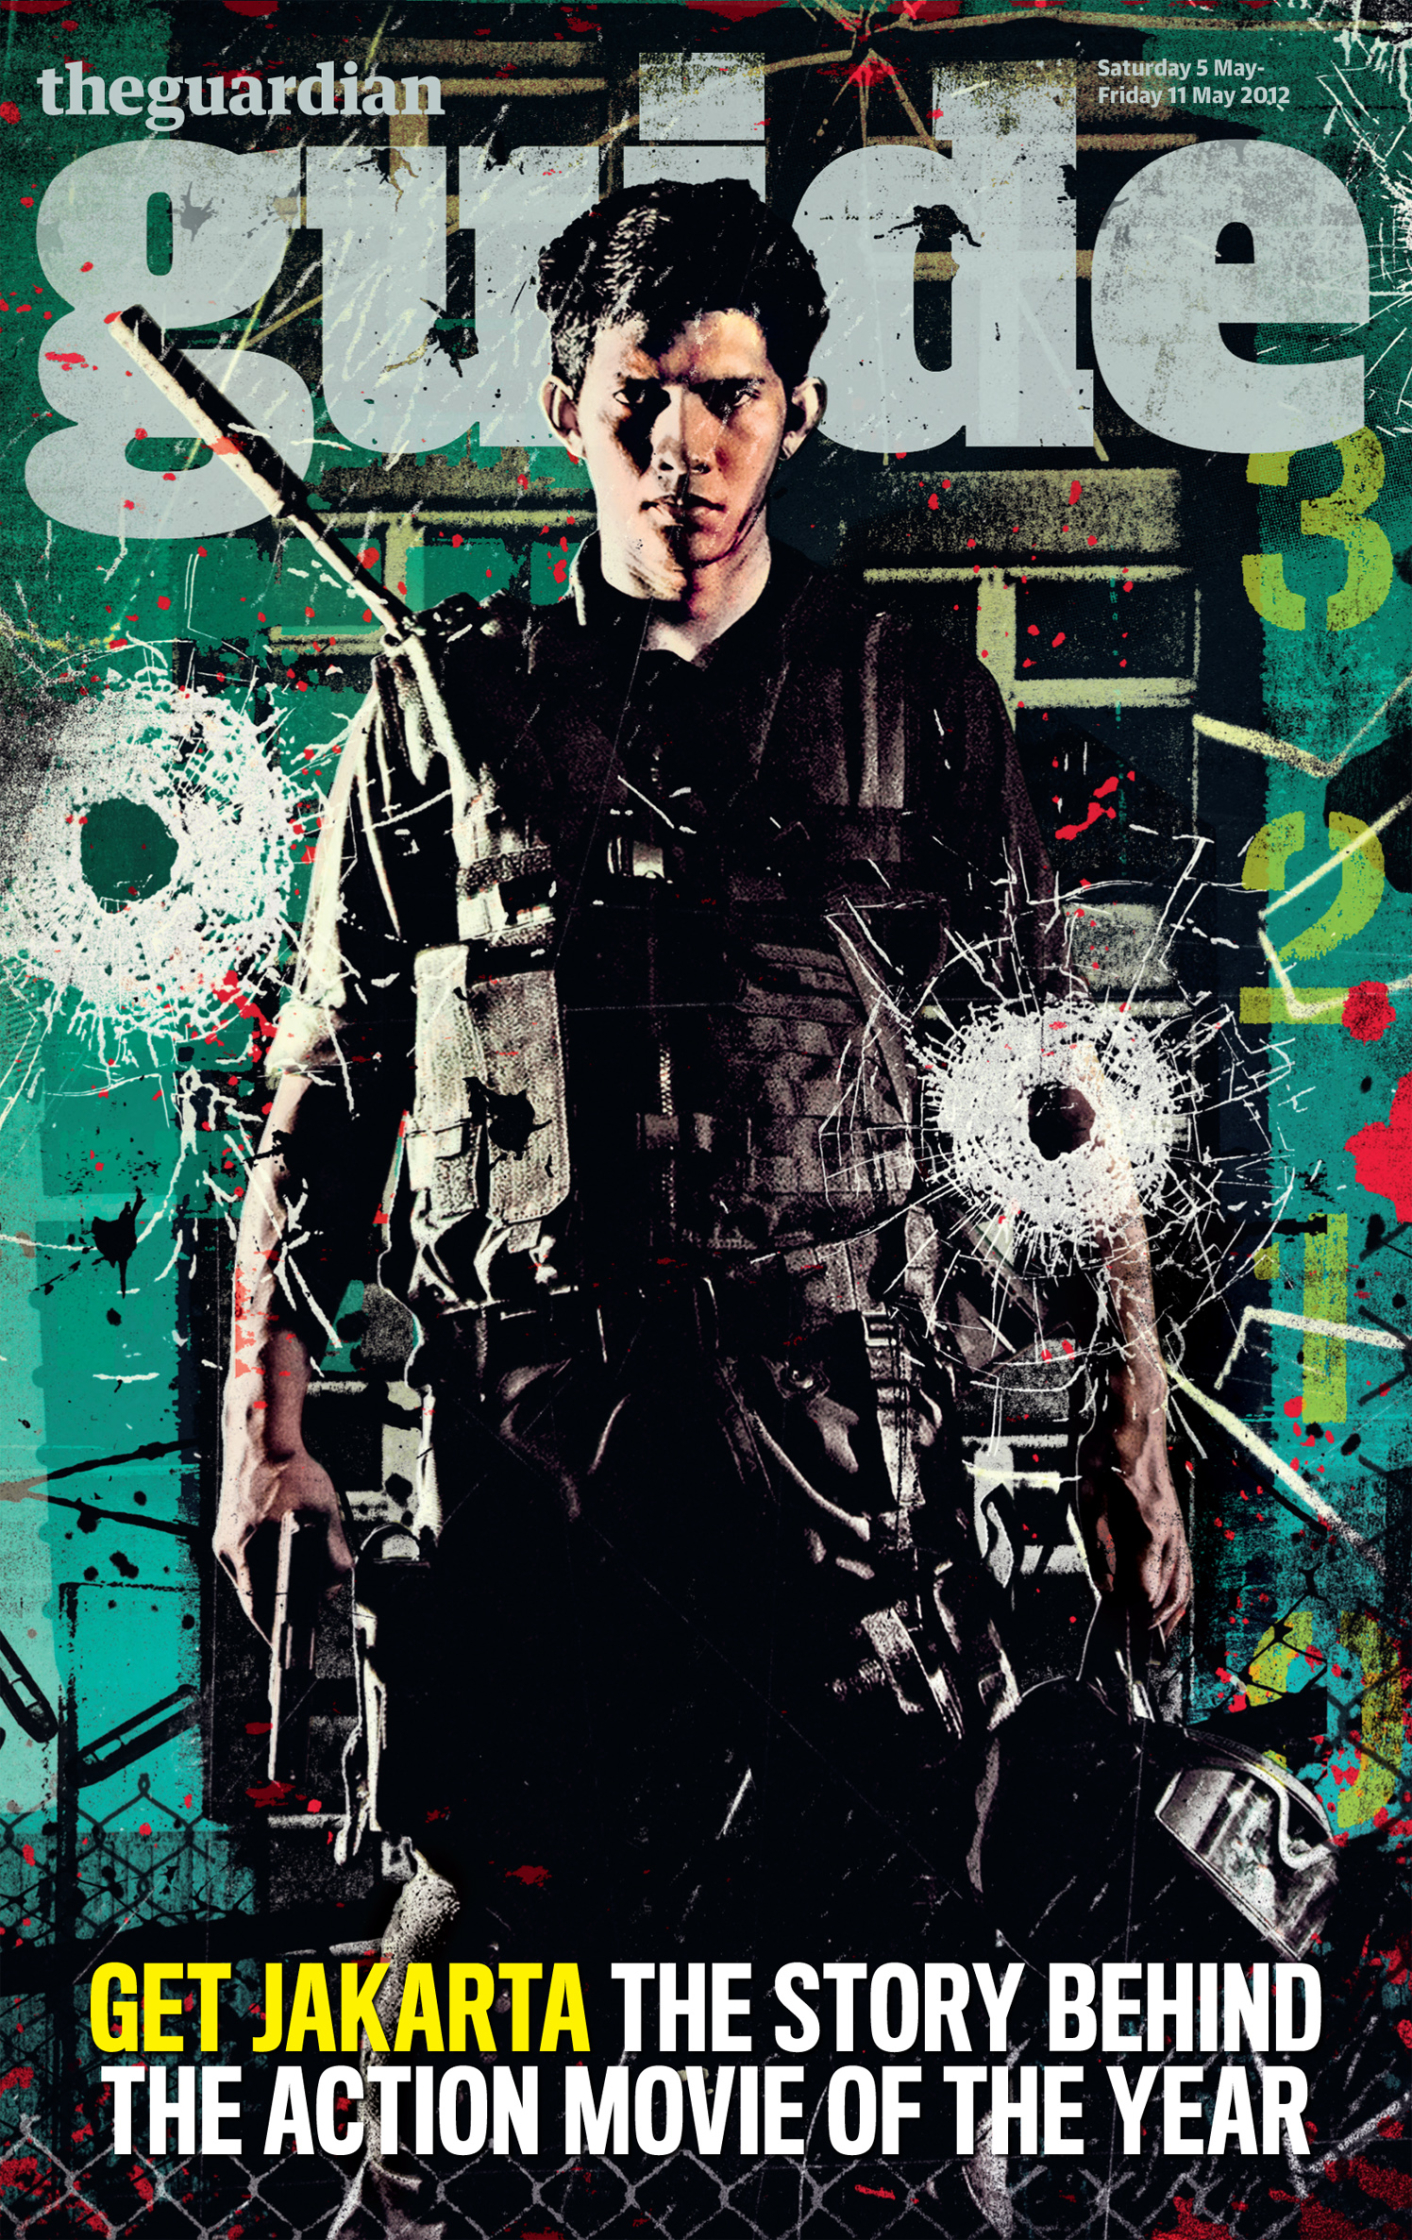 The Raid / The Guardian Guide